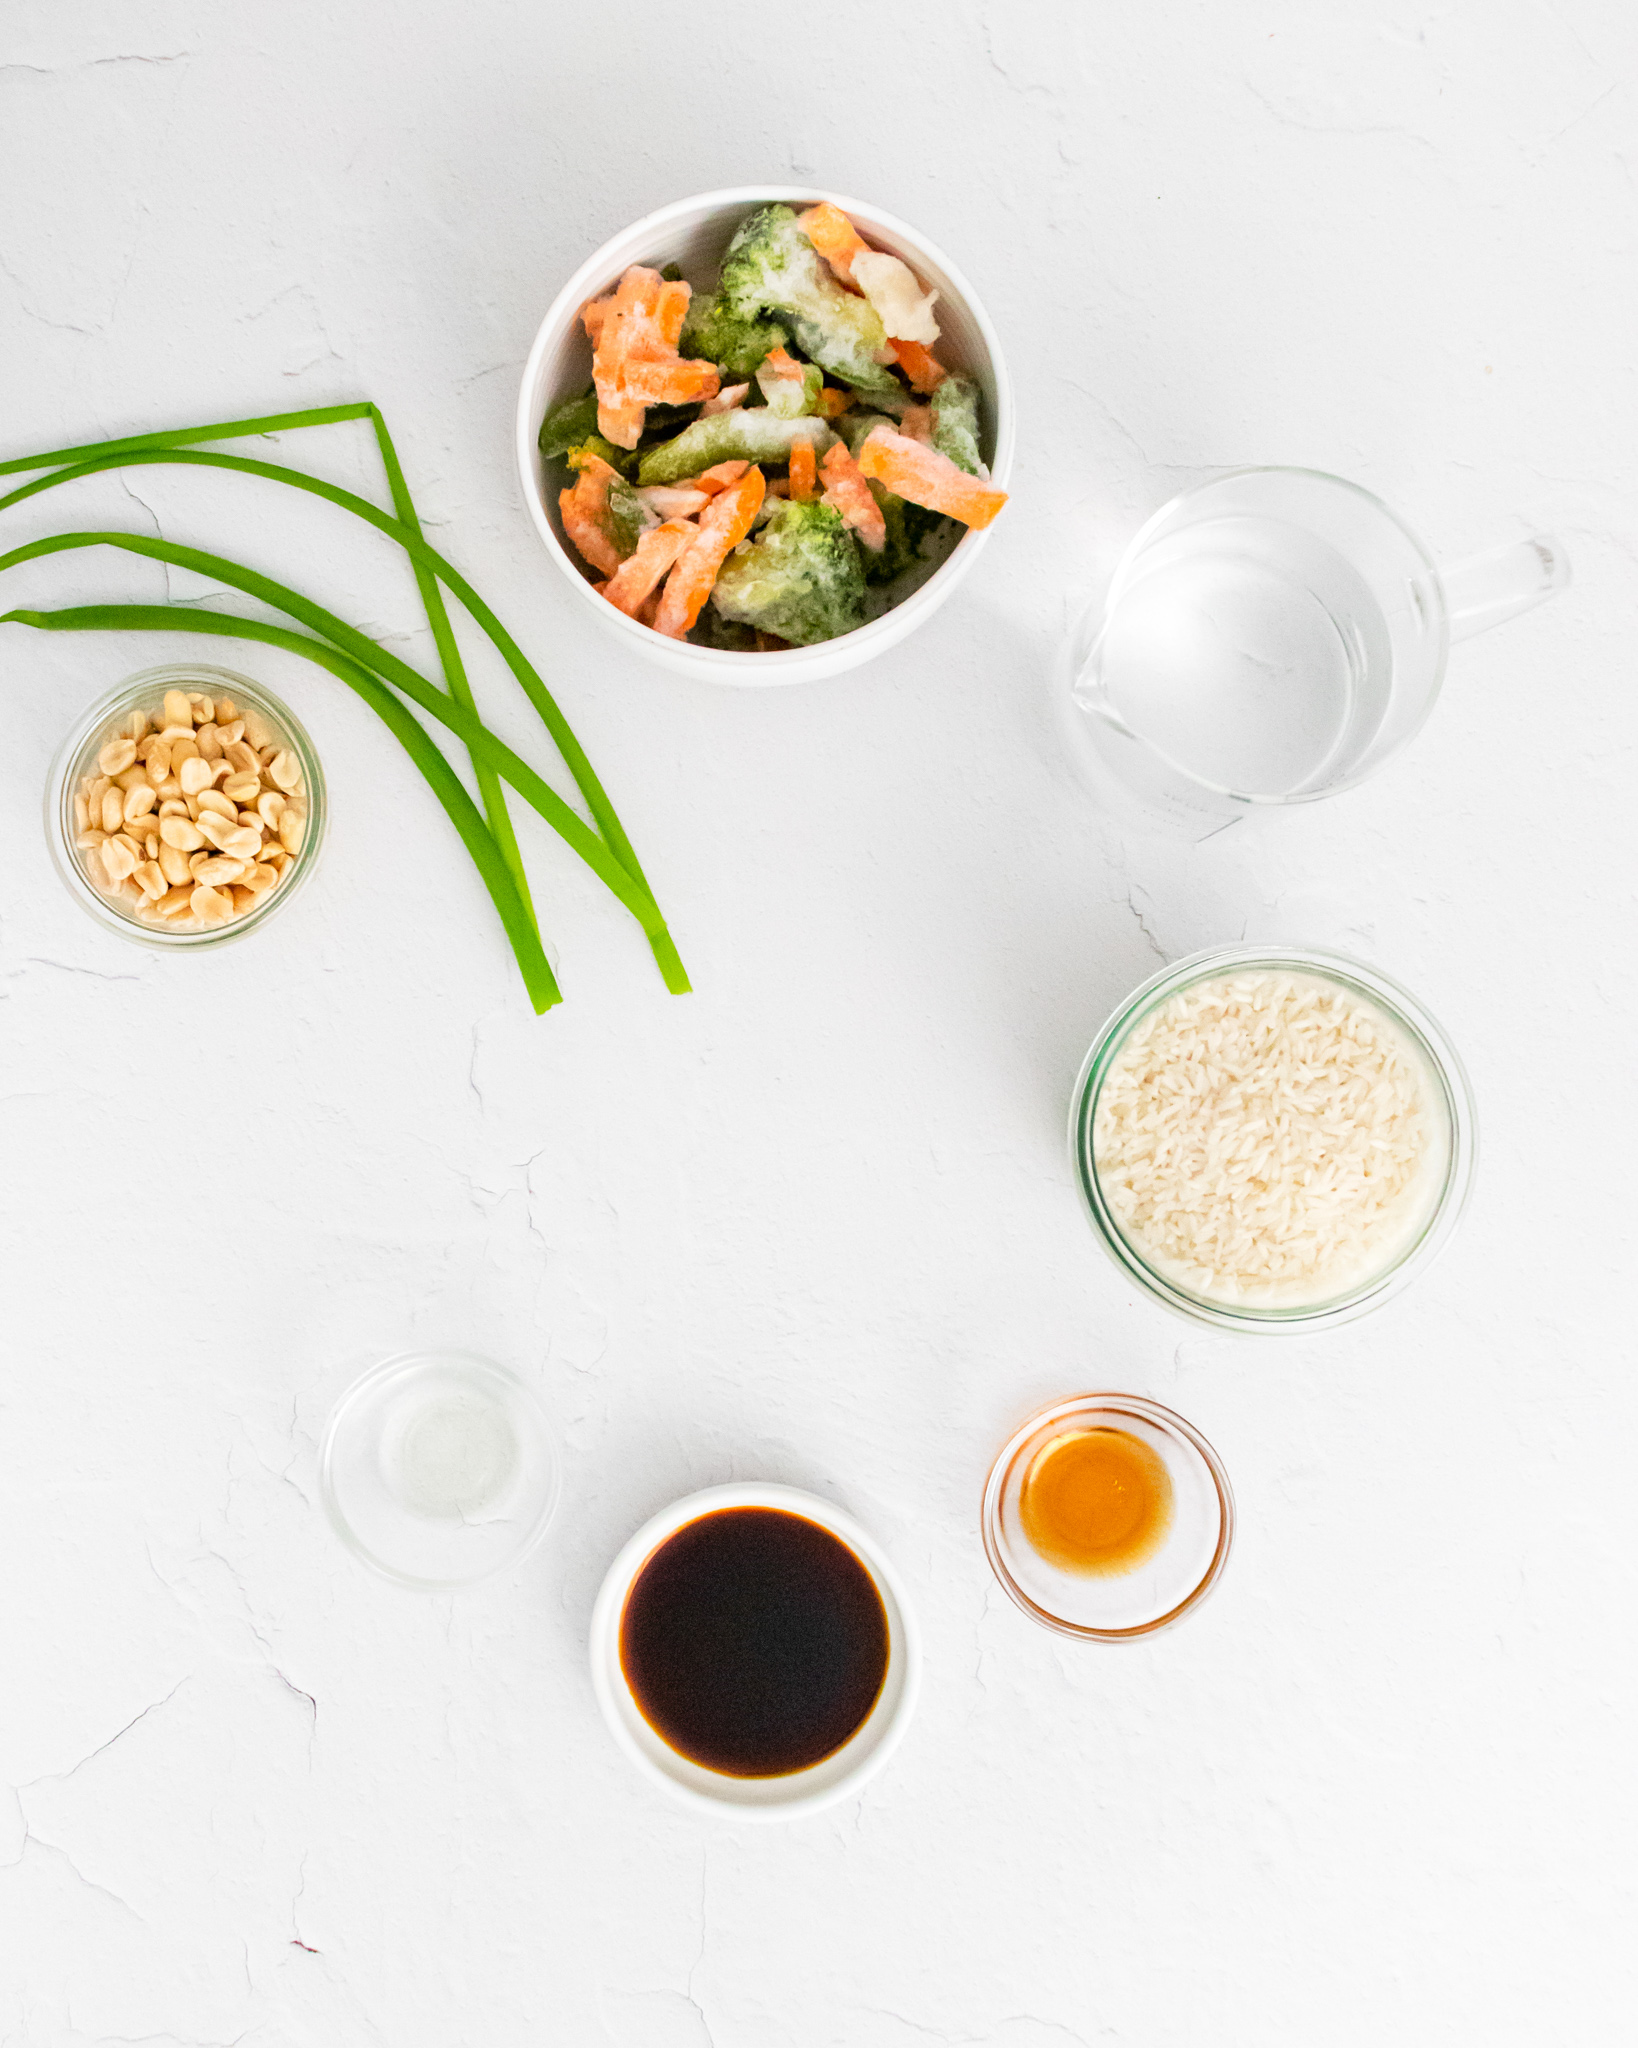 Instant Pot Fried Rice ingredients.